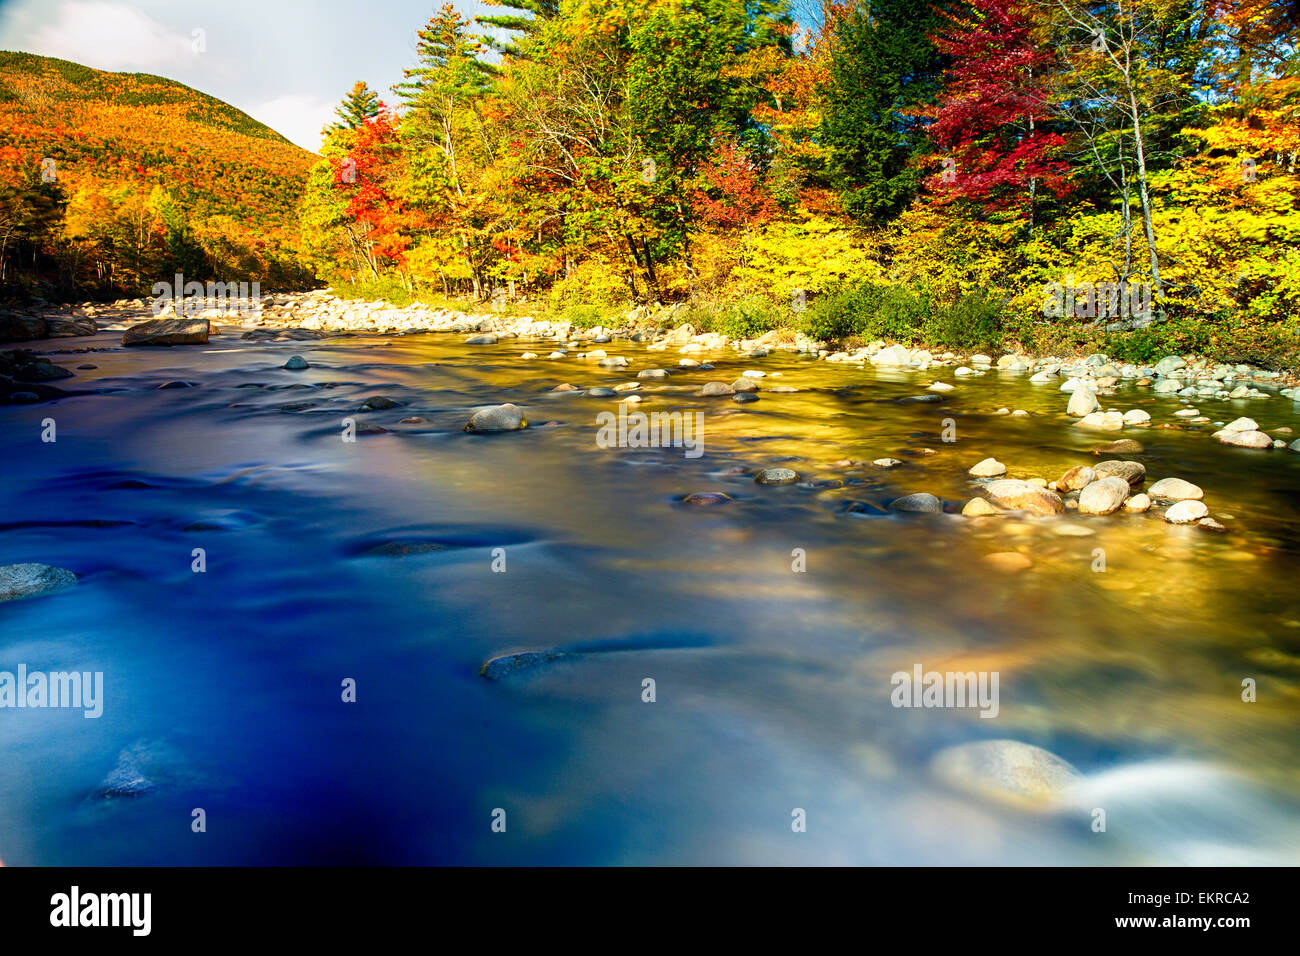 Low Angle View of a River with Colorful Autumn Foliage, Saco River, Crawford Notch, White Mountains , New Hampshire Stock Photo